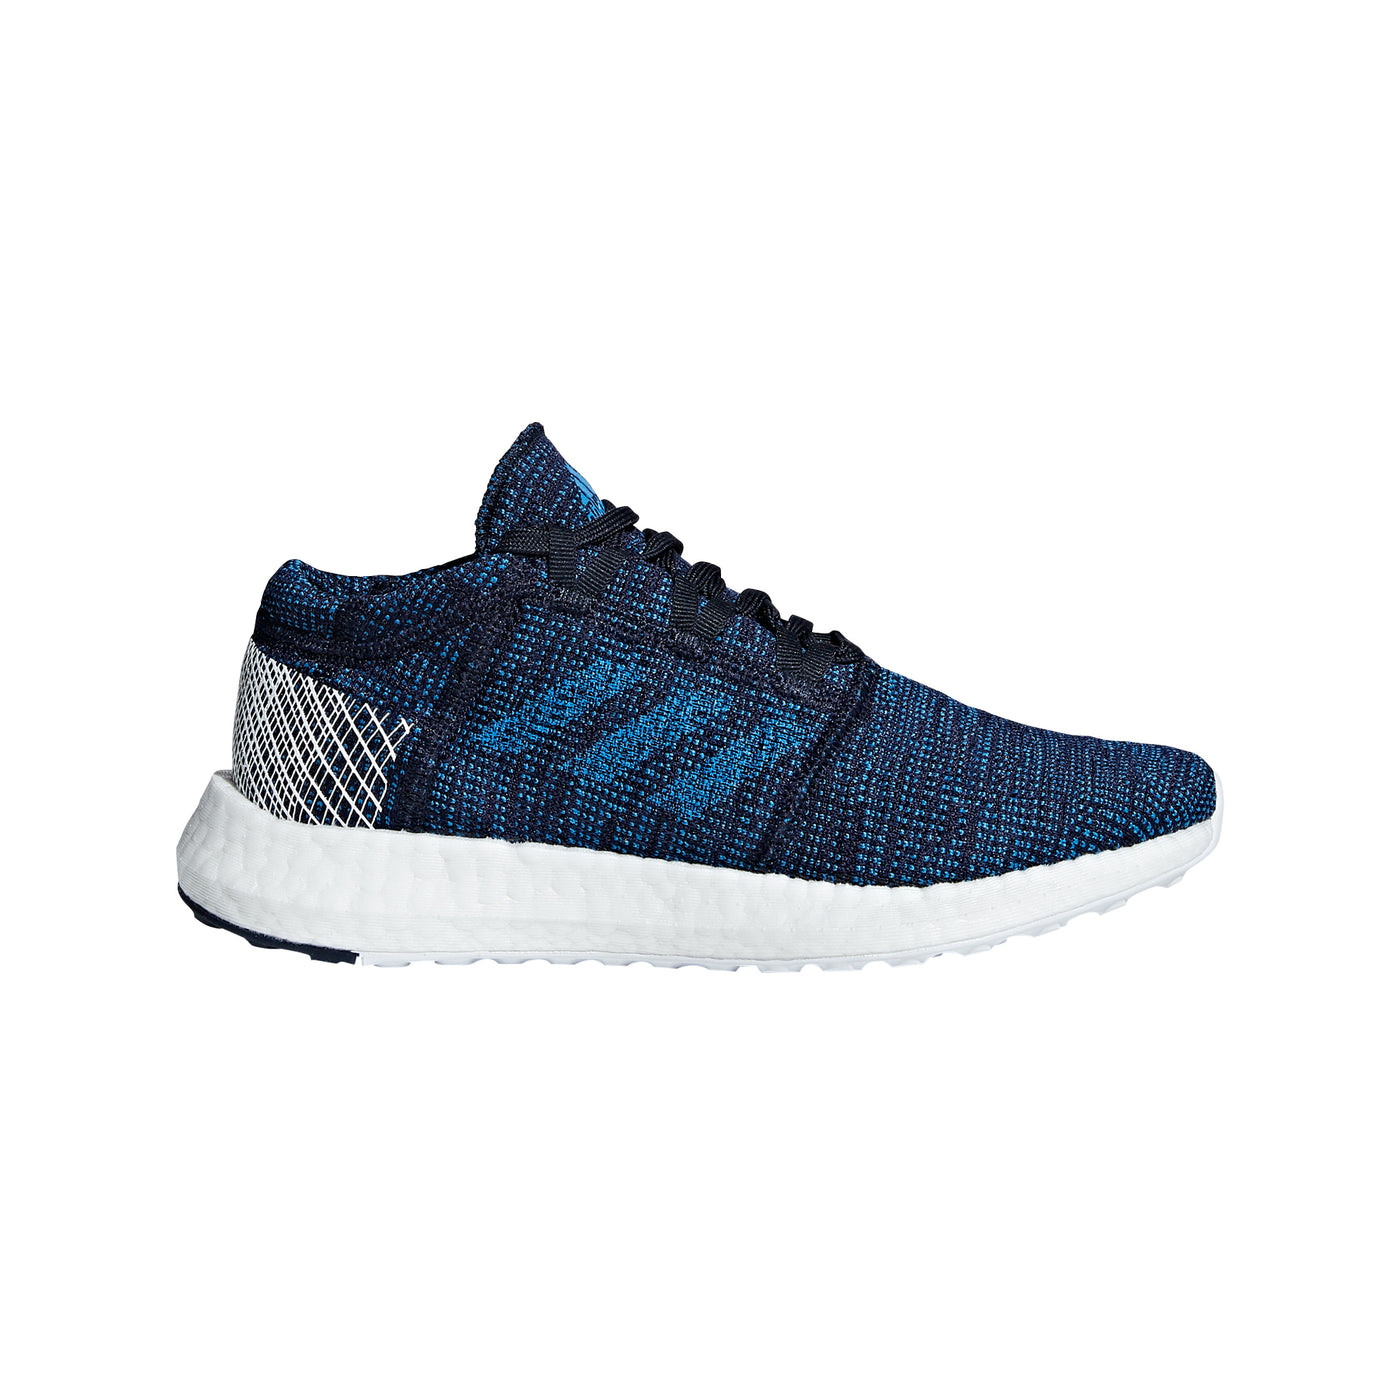 competitive price a9f89 9afd5 Youth Pure Boost Go Running Shoe - Legend Ink Bright Blue Hi-Res Orang –  Gazelle Sports